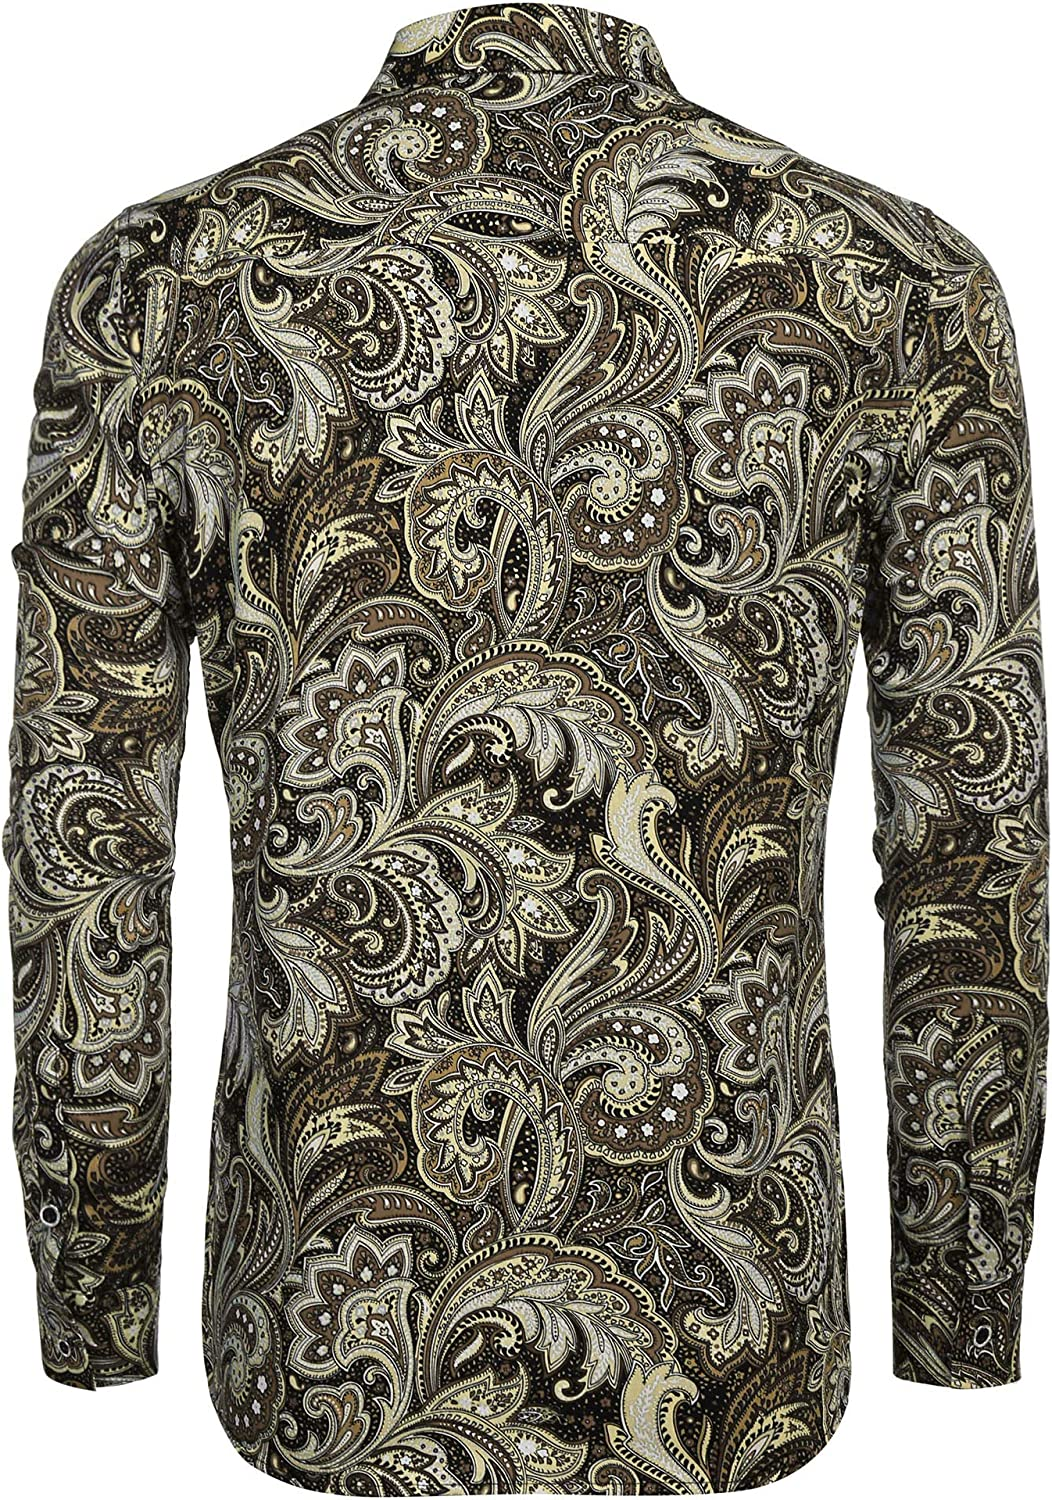 HERW Mens Casual and Comfortable Trend Long-Sleeved Large Size Shirt Flower Shirt